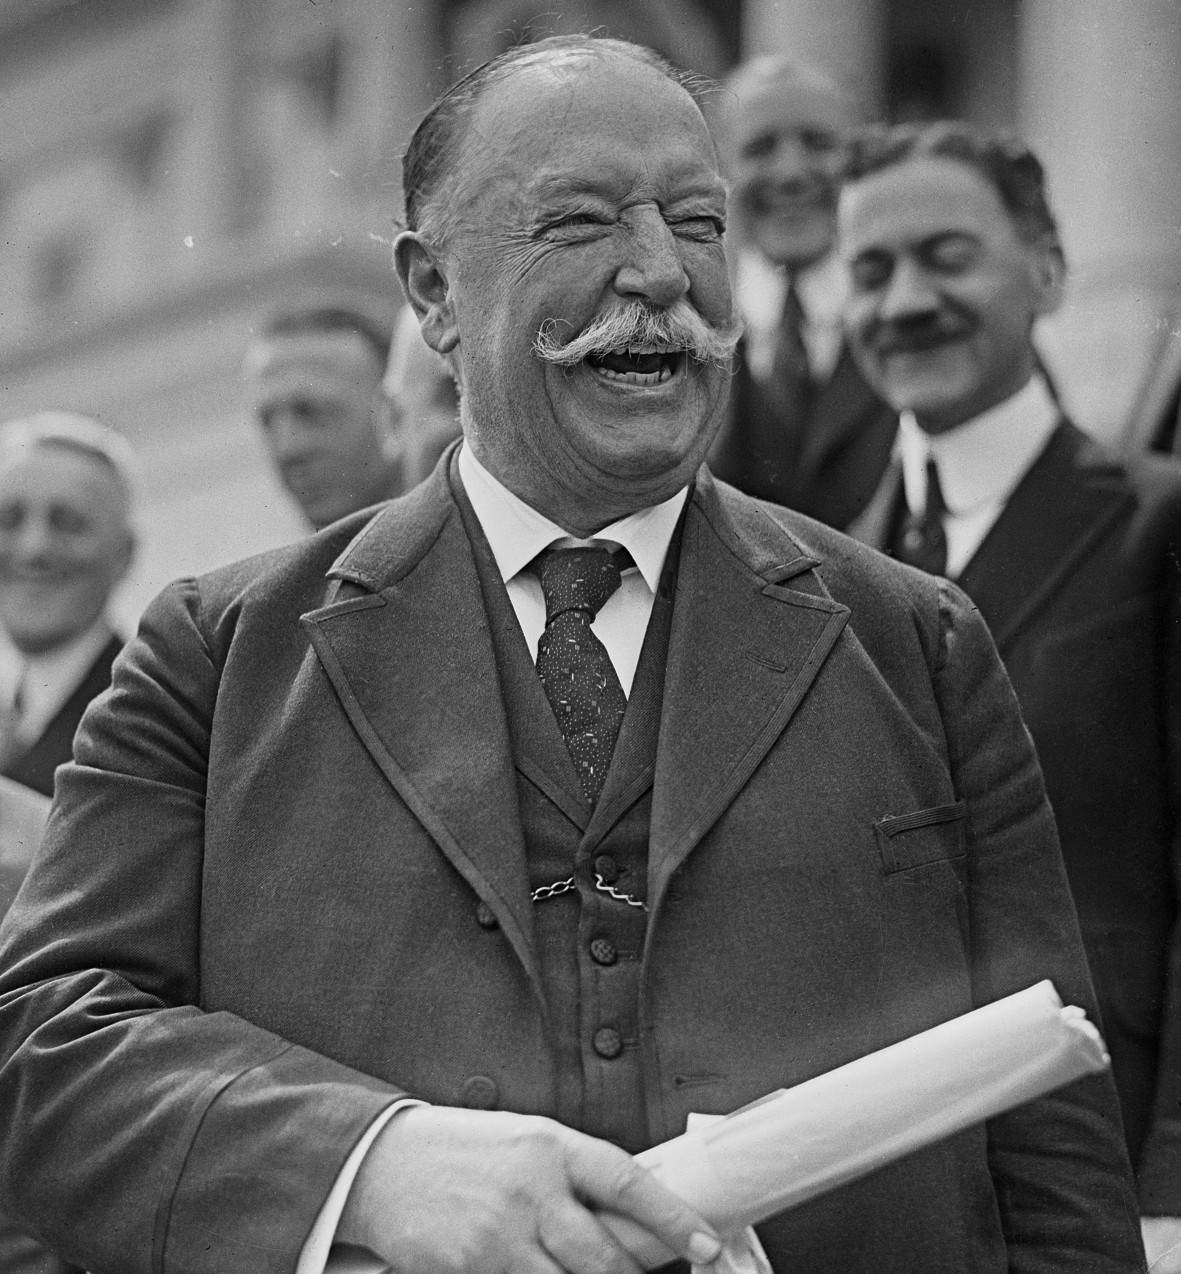 biography president taft William howard taft was born near cincinnati on september 15, 1857 taft went  to woodward high school in cincinnati, and then continued on to attend yale.